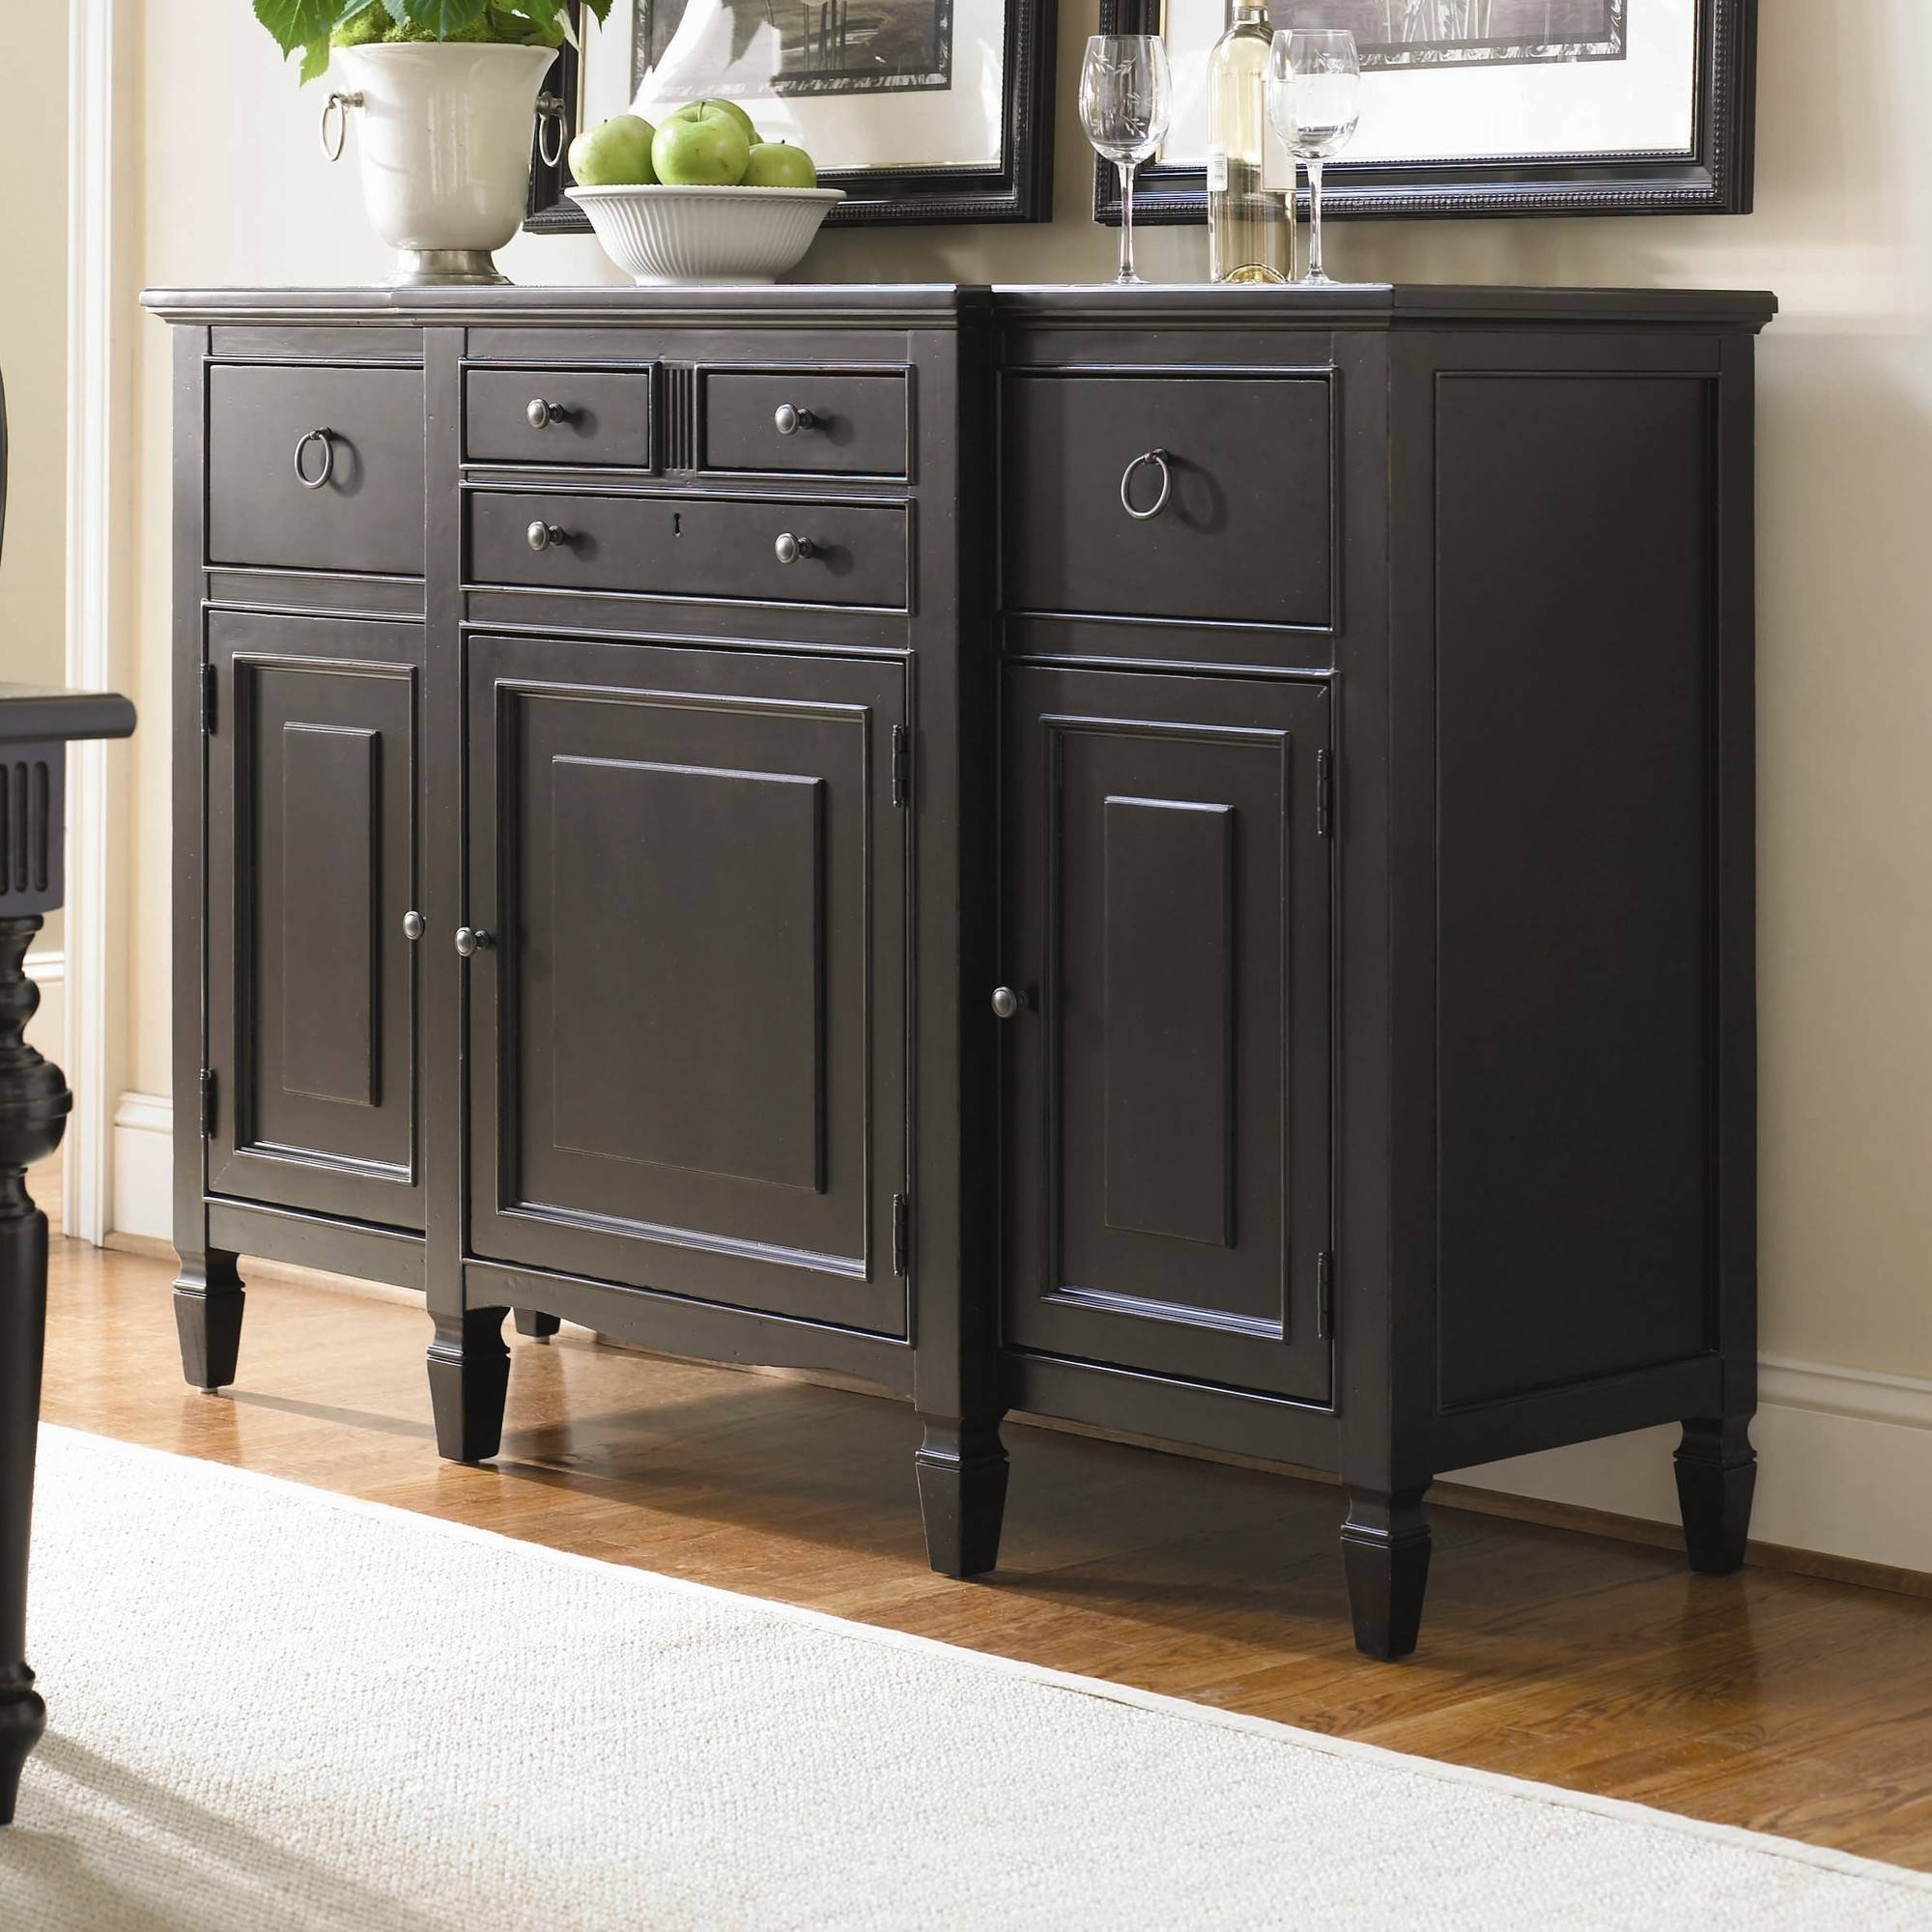 Best Of Buffet Sideboard Server – Bjdgjy Intended For Most Popular Dining Buffets And Sideboards (#2 of 15)